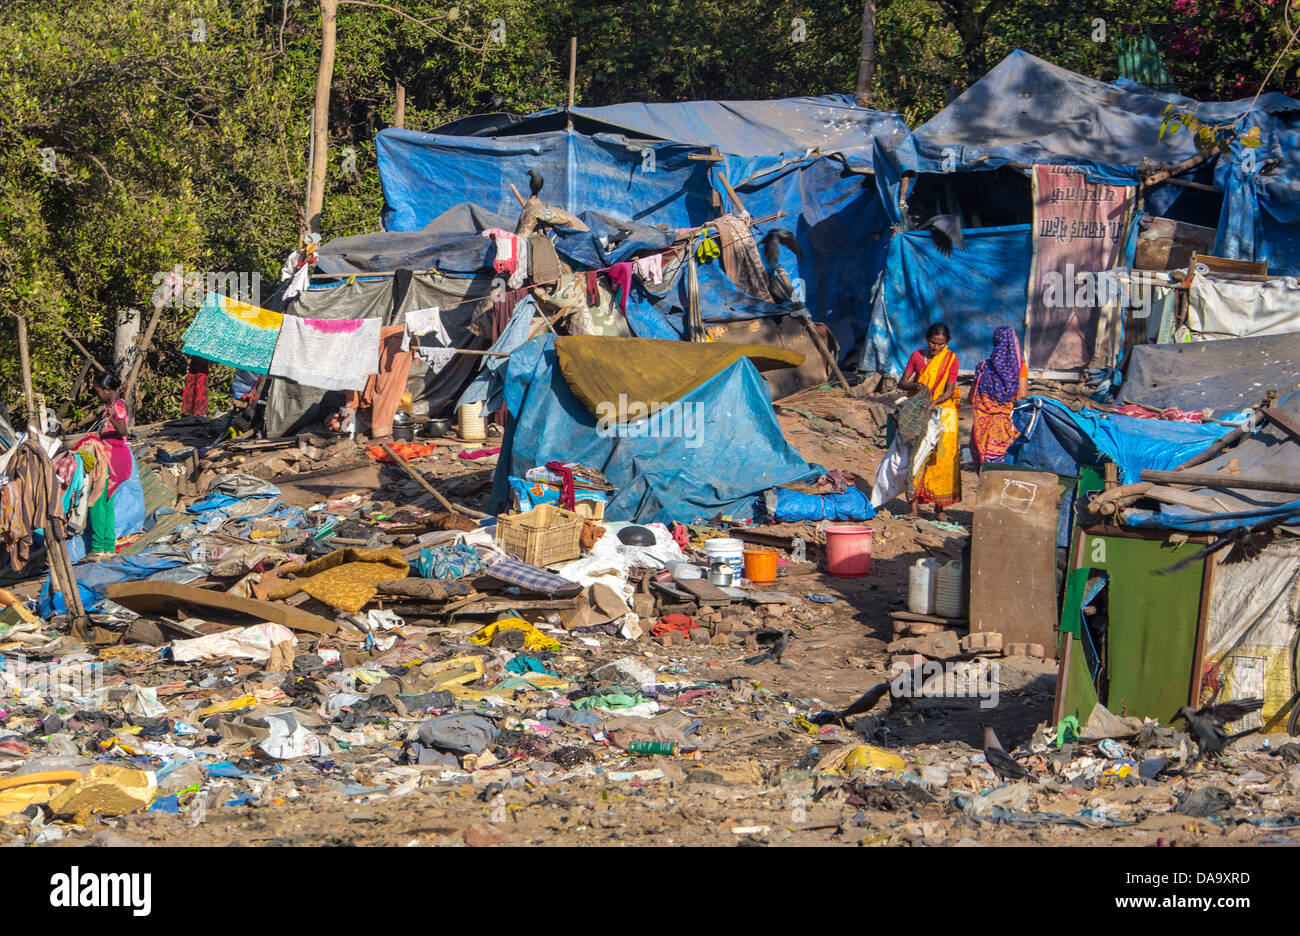 India, South India, Asia, Mumbay  City, dirt, dirty, garbage, plastic, poverty, rubbish, slum, poor - Stock Image